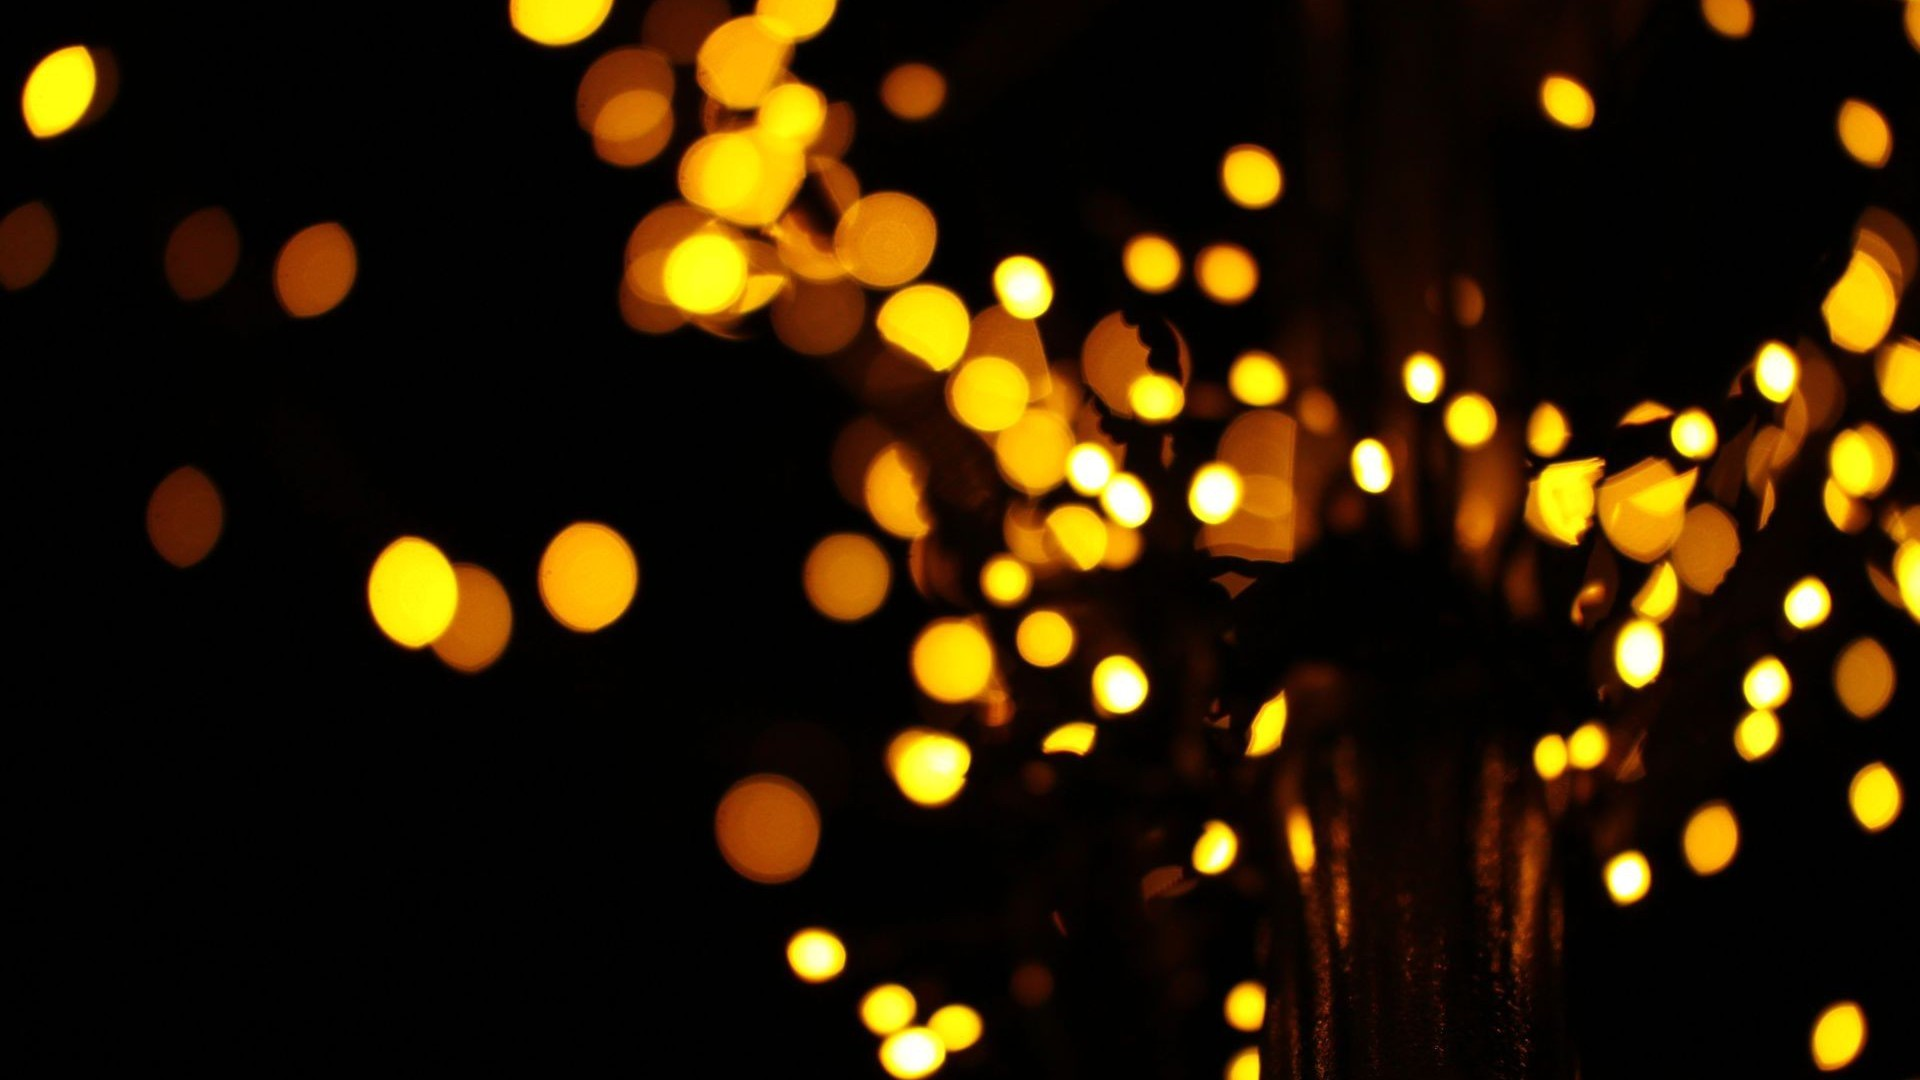 all hd wallpaper bokeh - photo #27